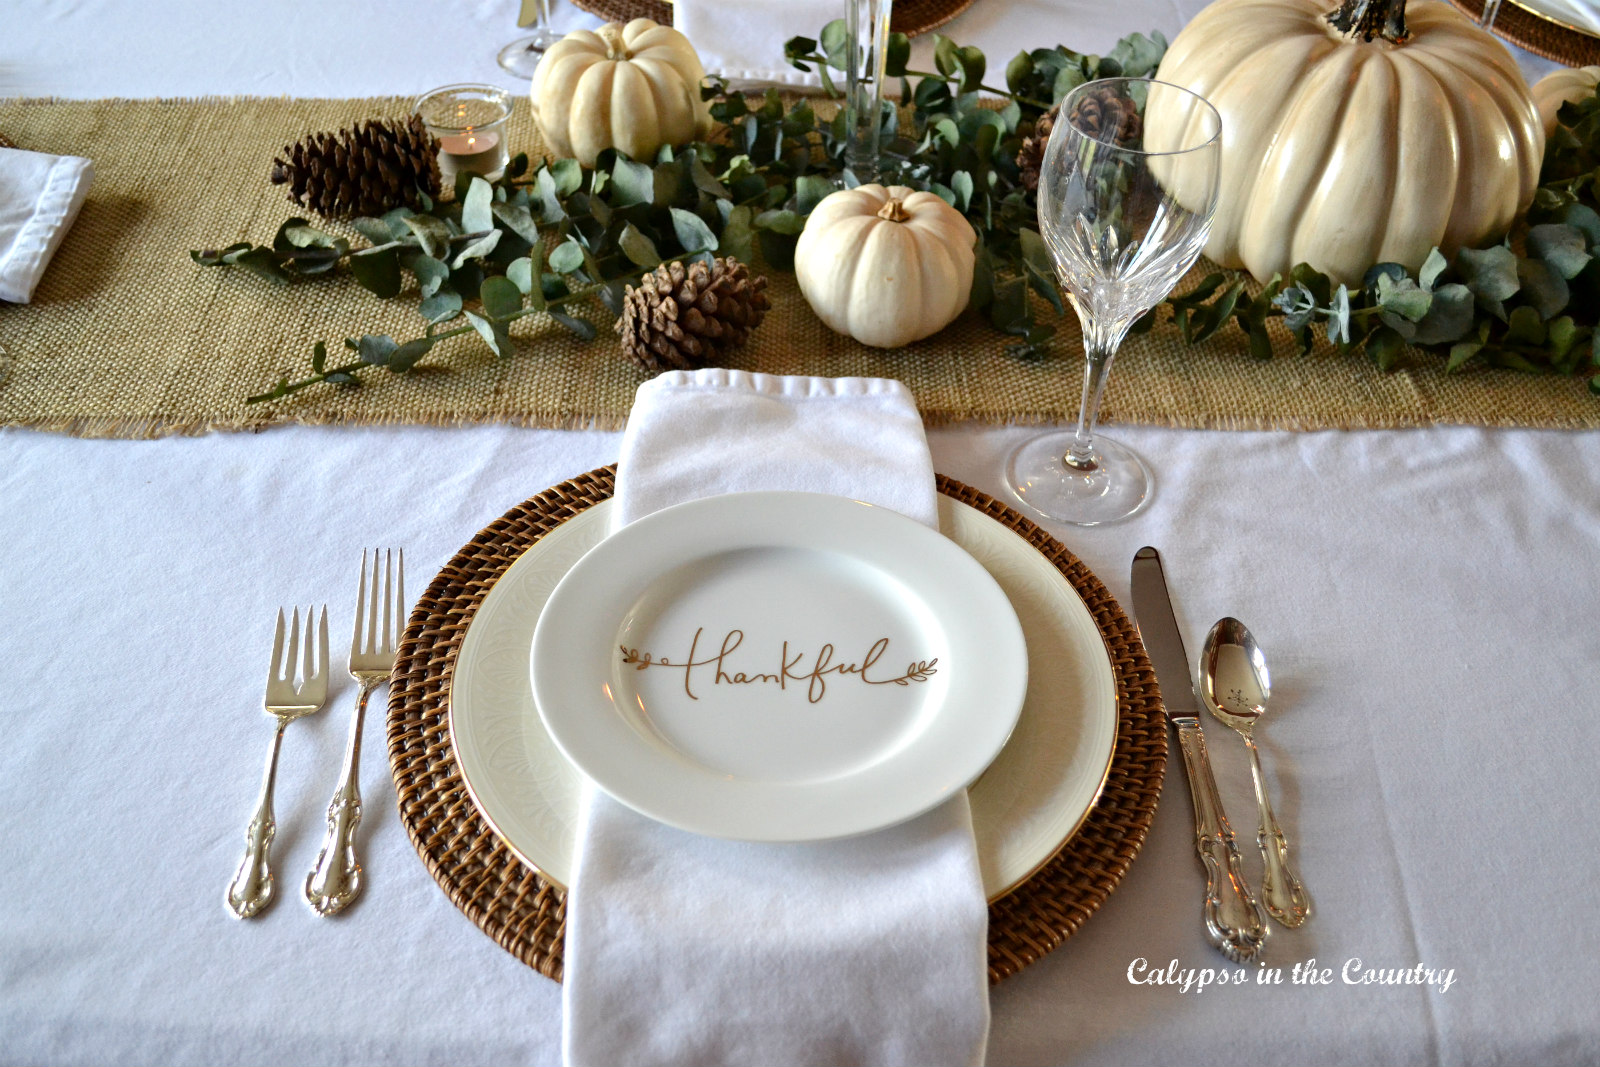 Thankful Place Setting on White Tablecloth